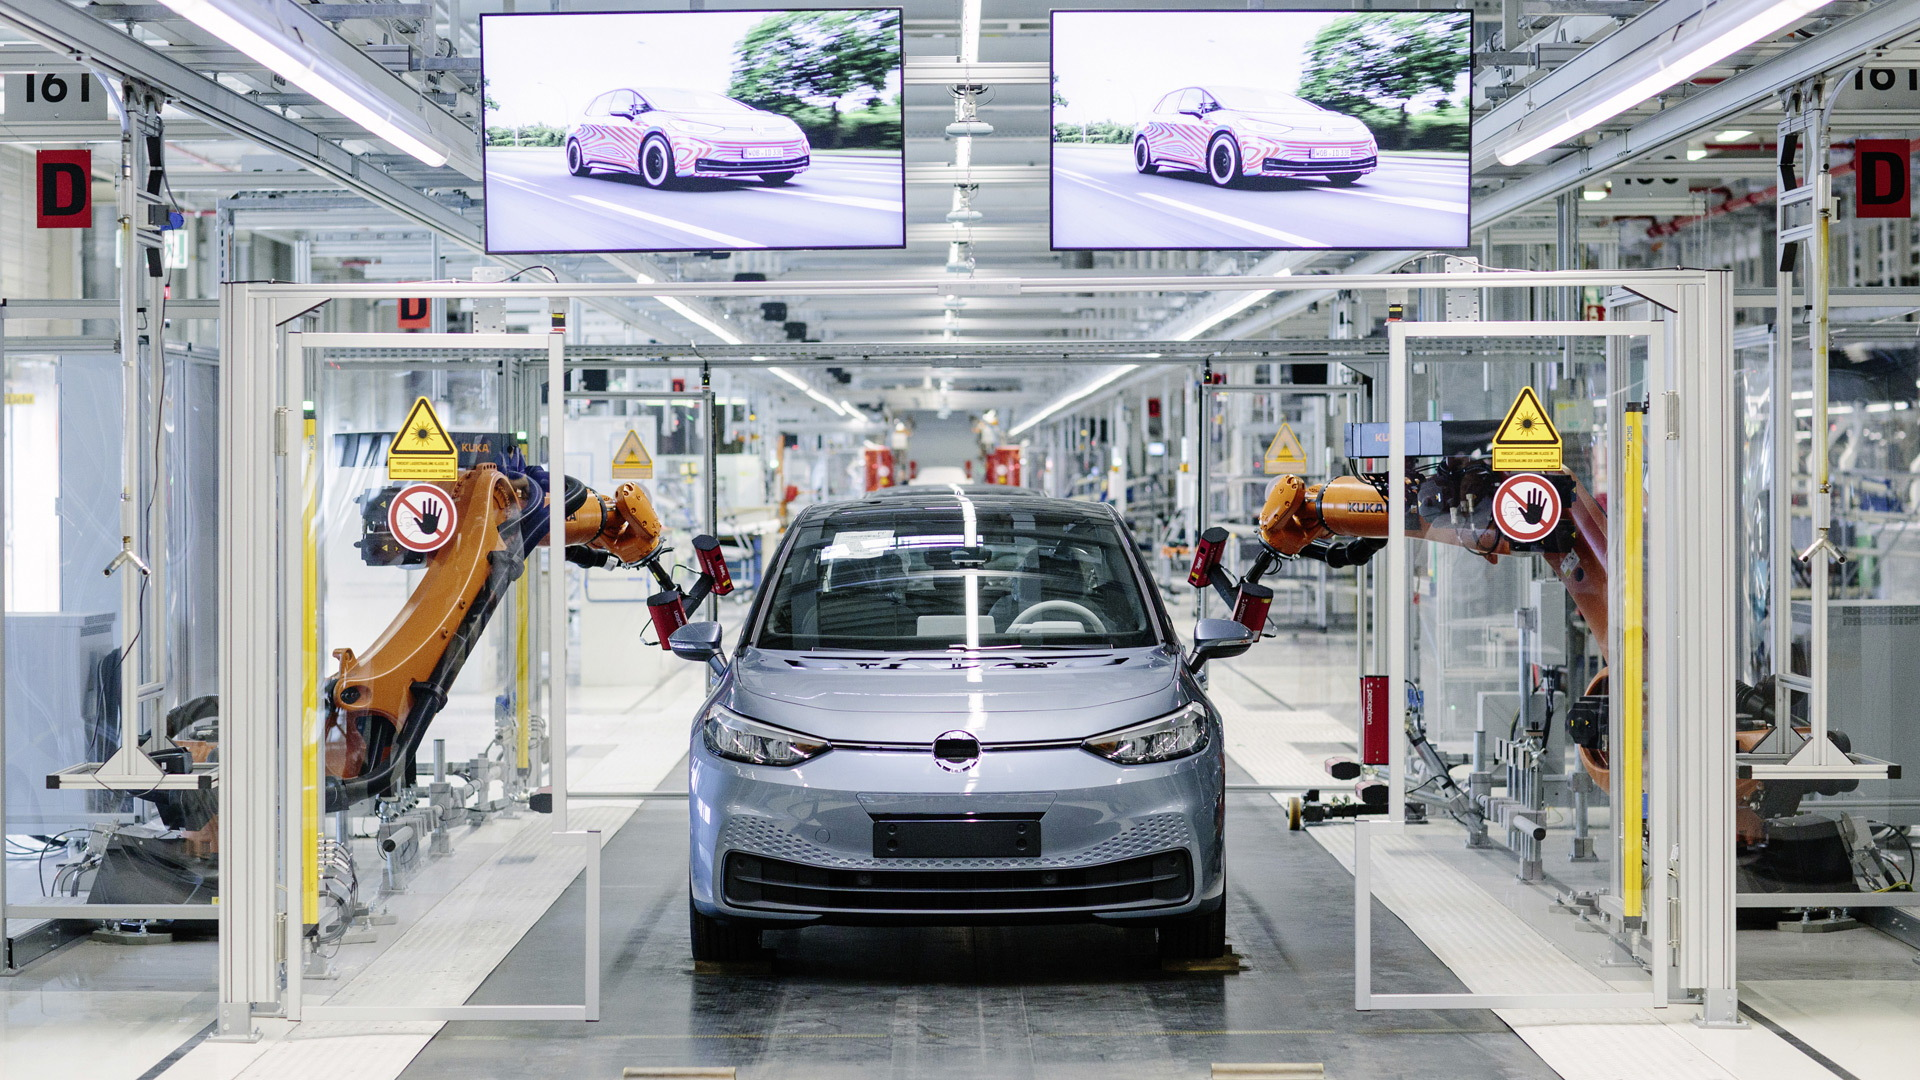 2020 Volkswagen ID 3 production at plant in  Zwickau, Germany